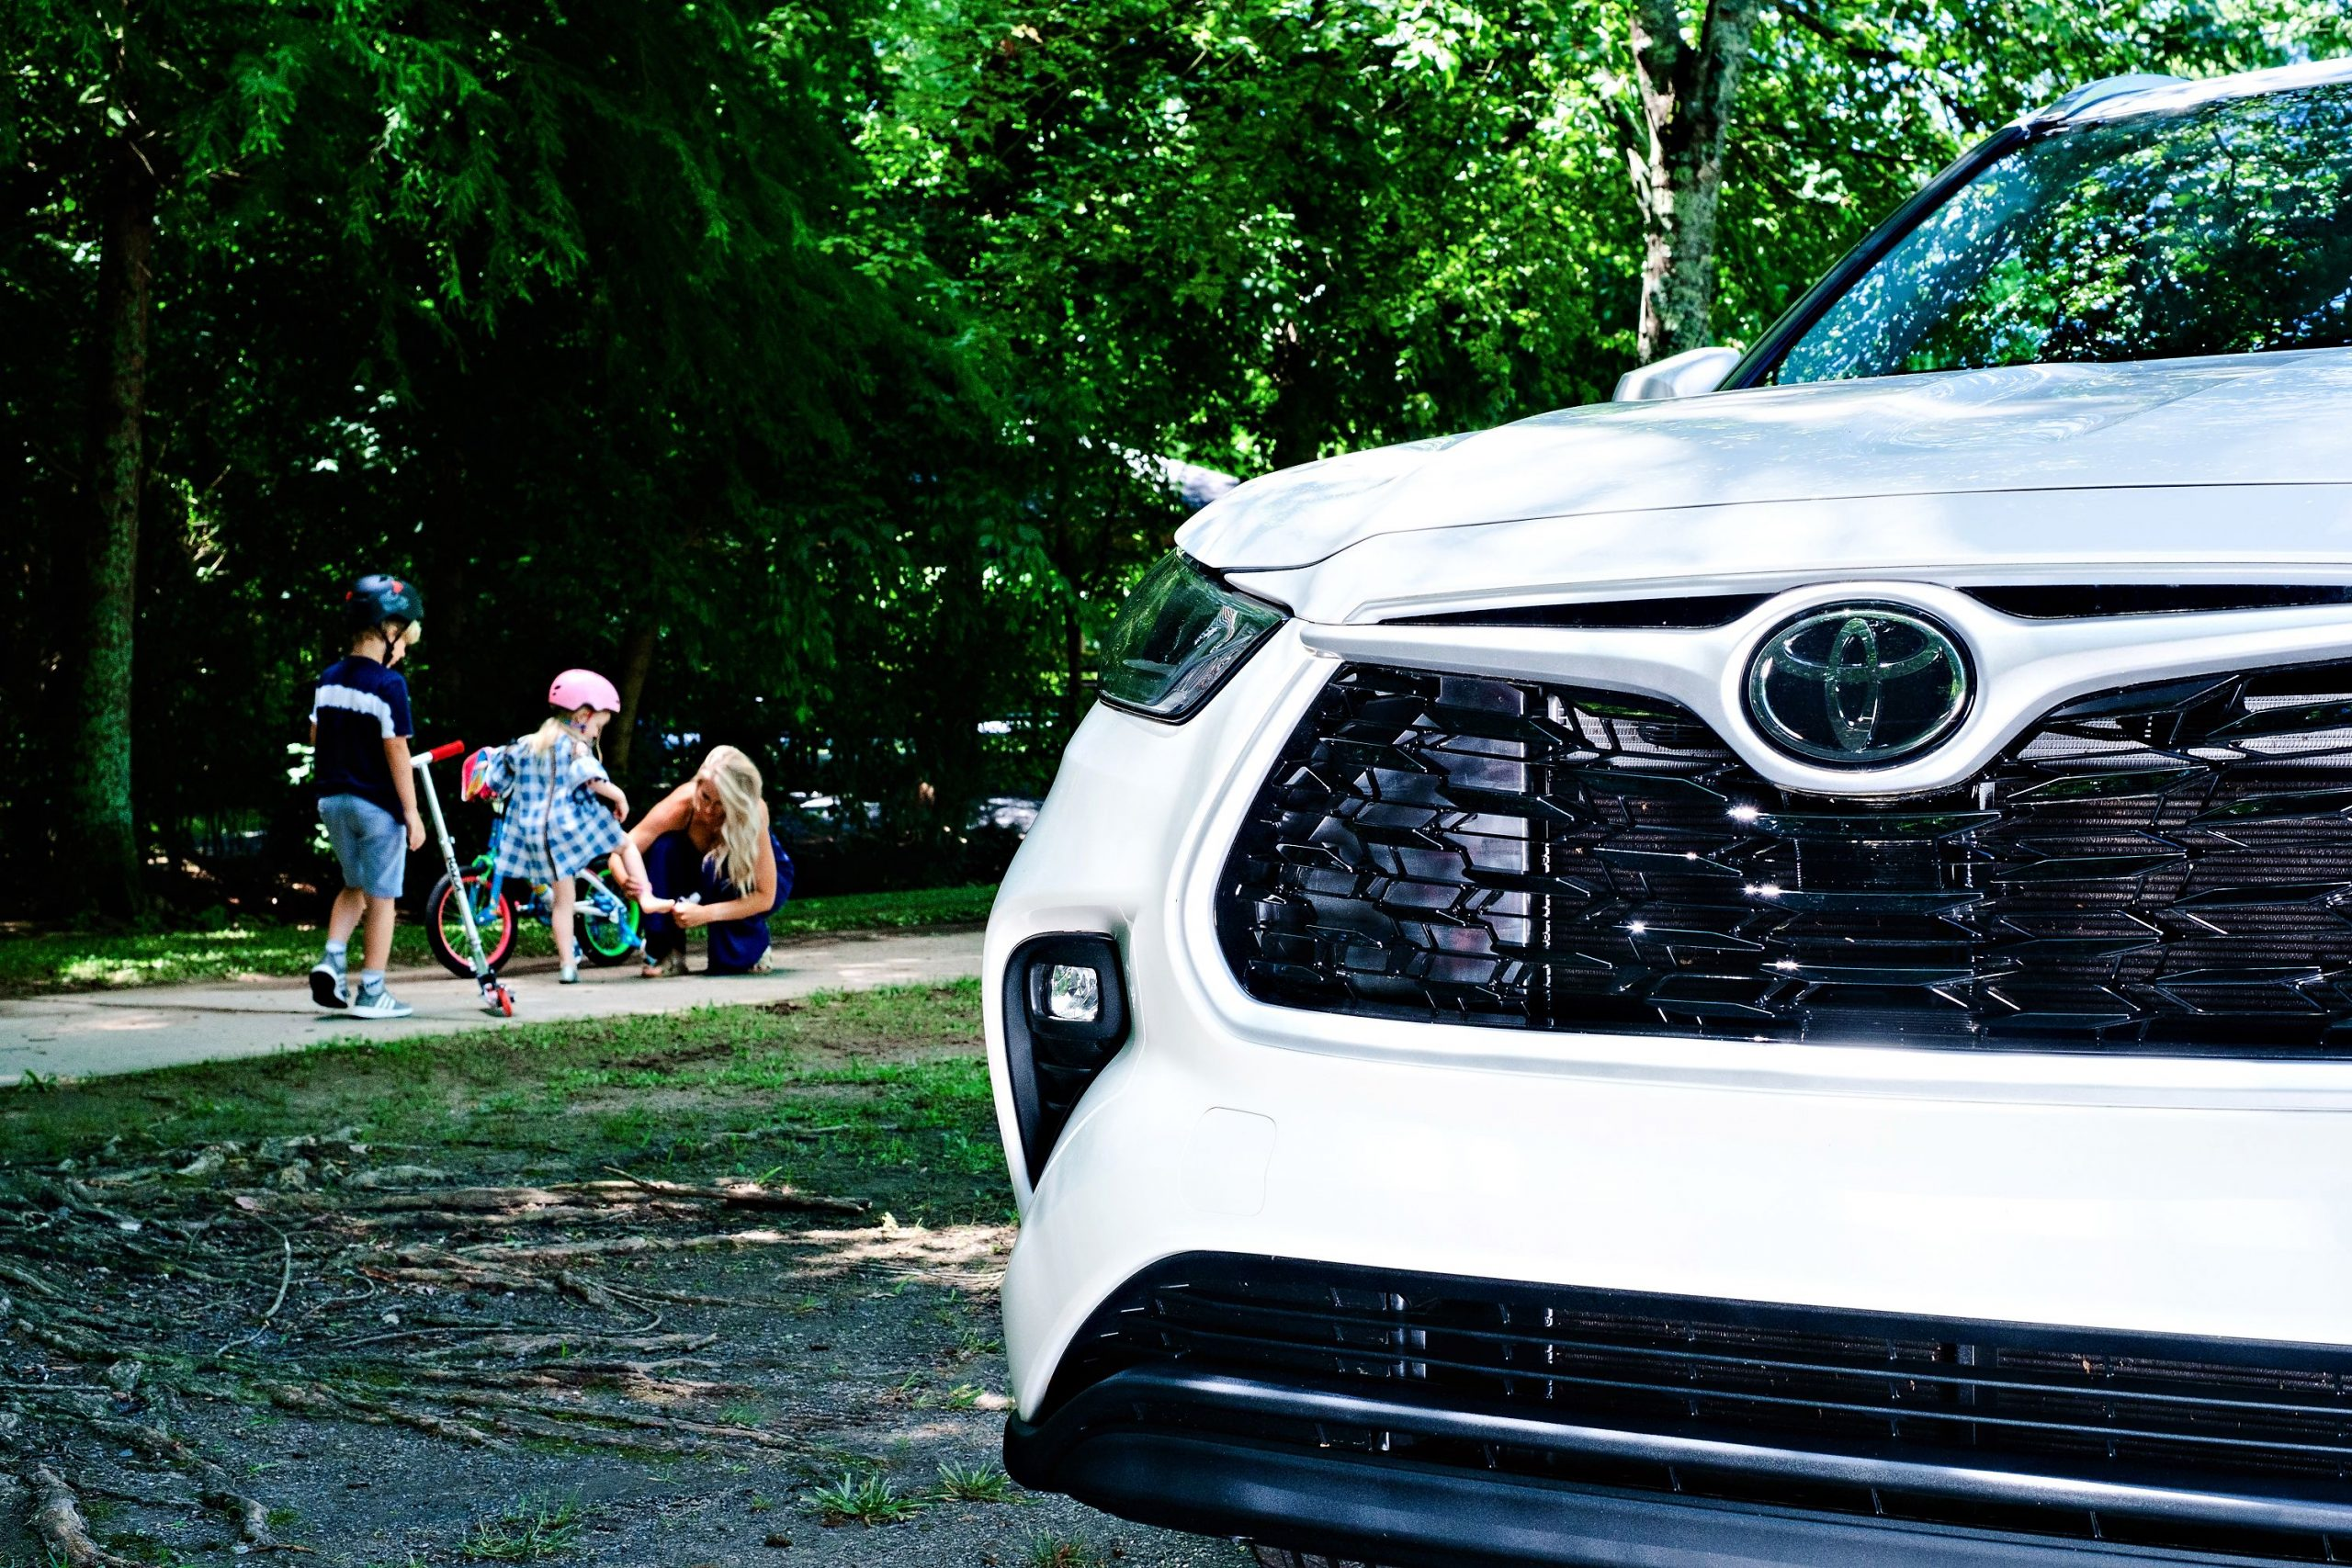 Looking into a Toyota Highlander? Popular Atlanta Blogger Happily Hughes is sharing her Toyota Highlander review! Click to see it HERE!